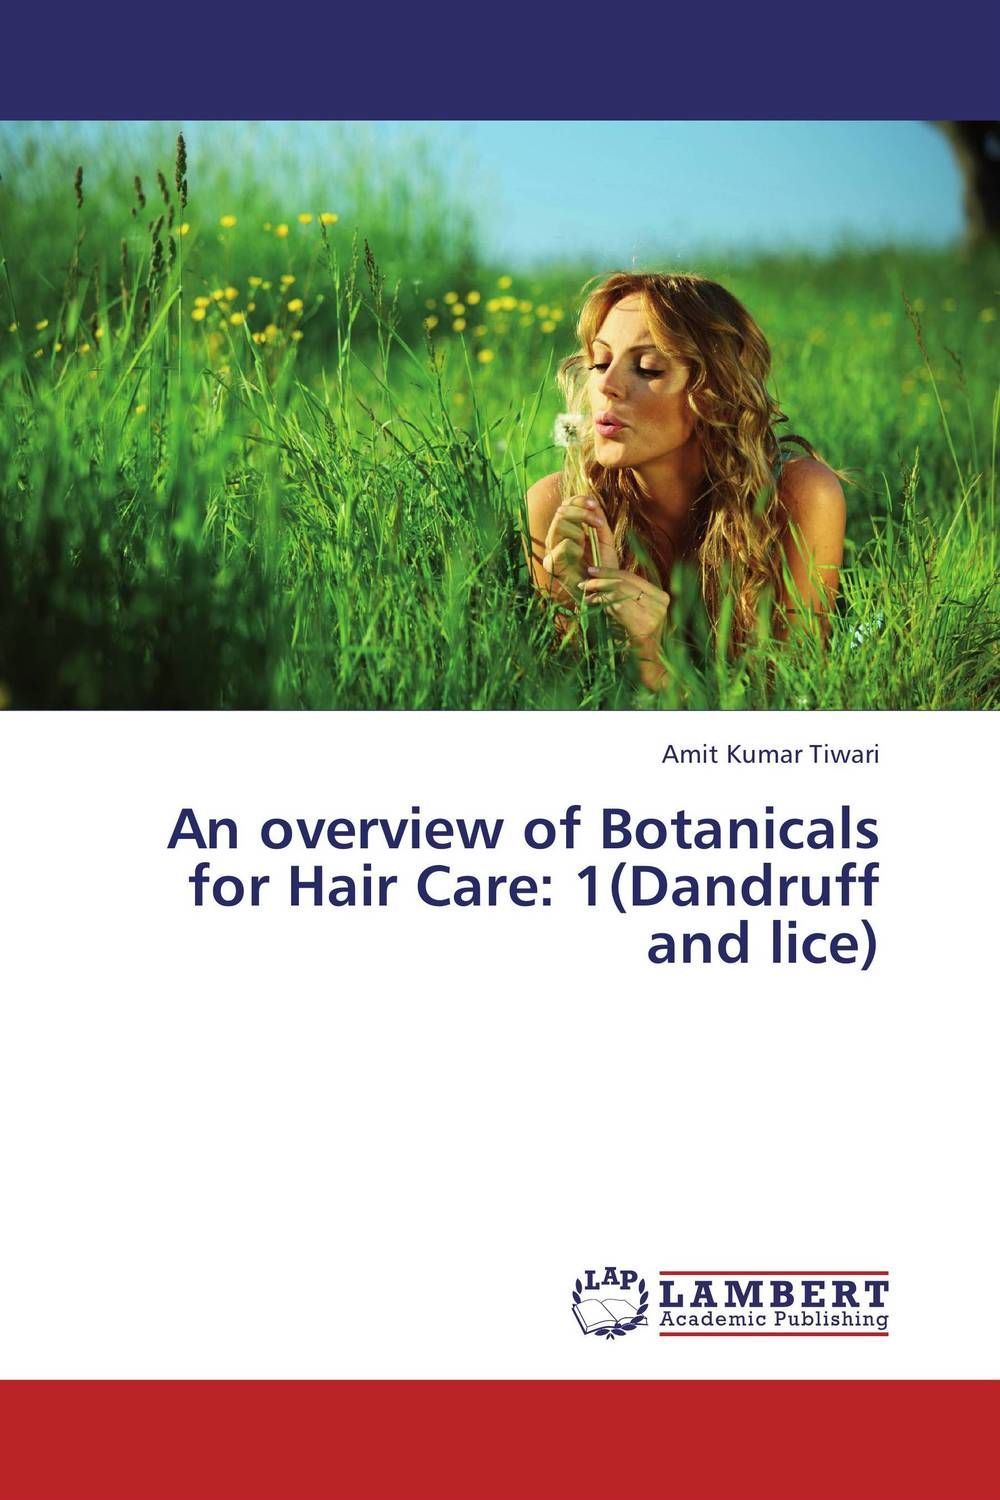 An overview of Botanicals for Hair Care: 1(Dandruff and lice) 1% coal tar herbs extract in the treatment of seborrheic dermatitis dandruff psoriasis itching shampoo wq016